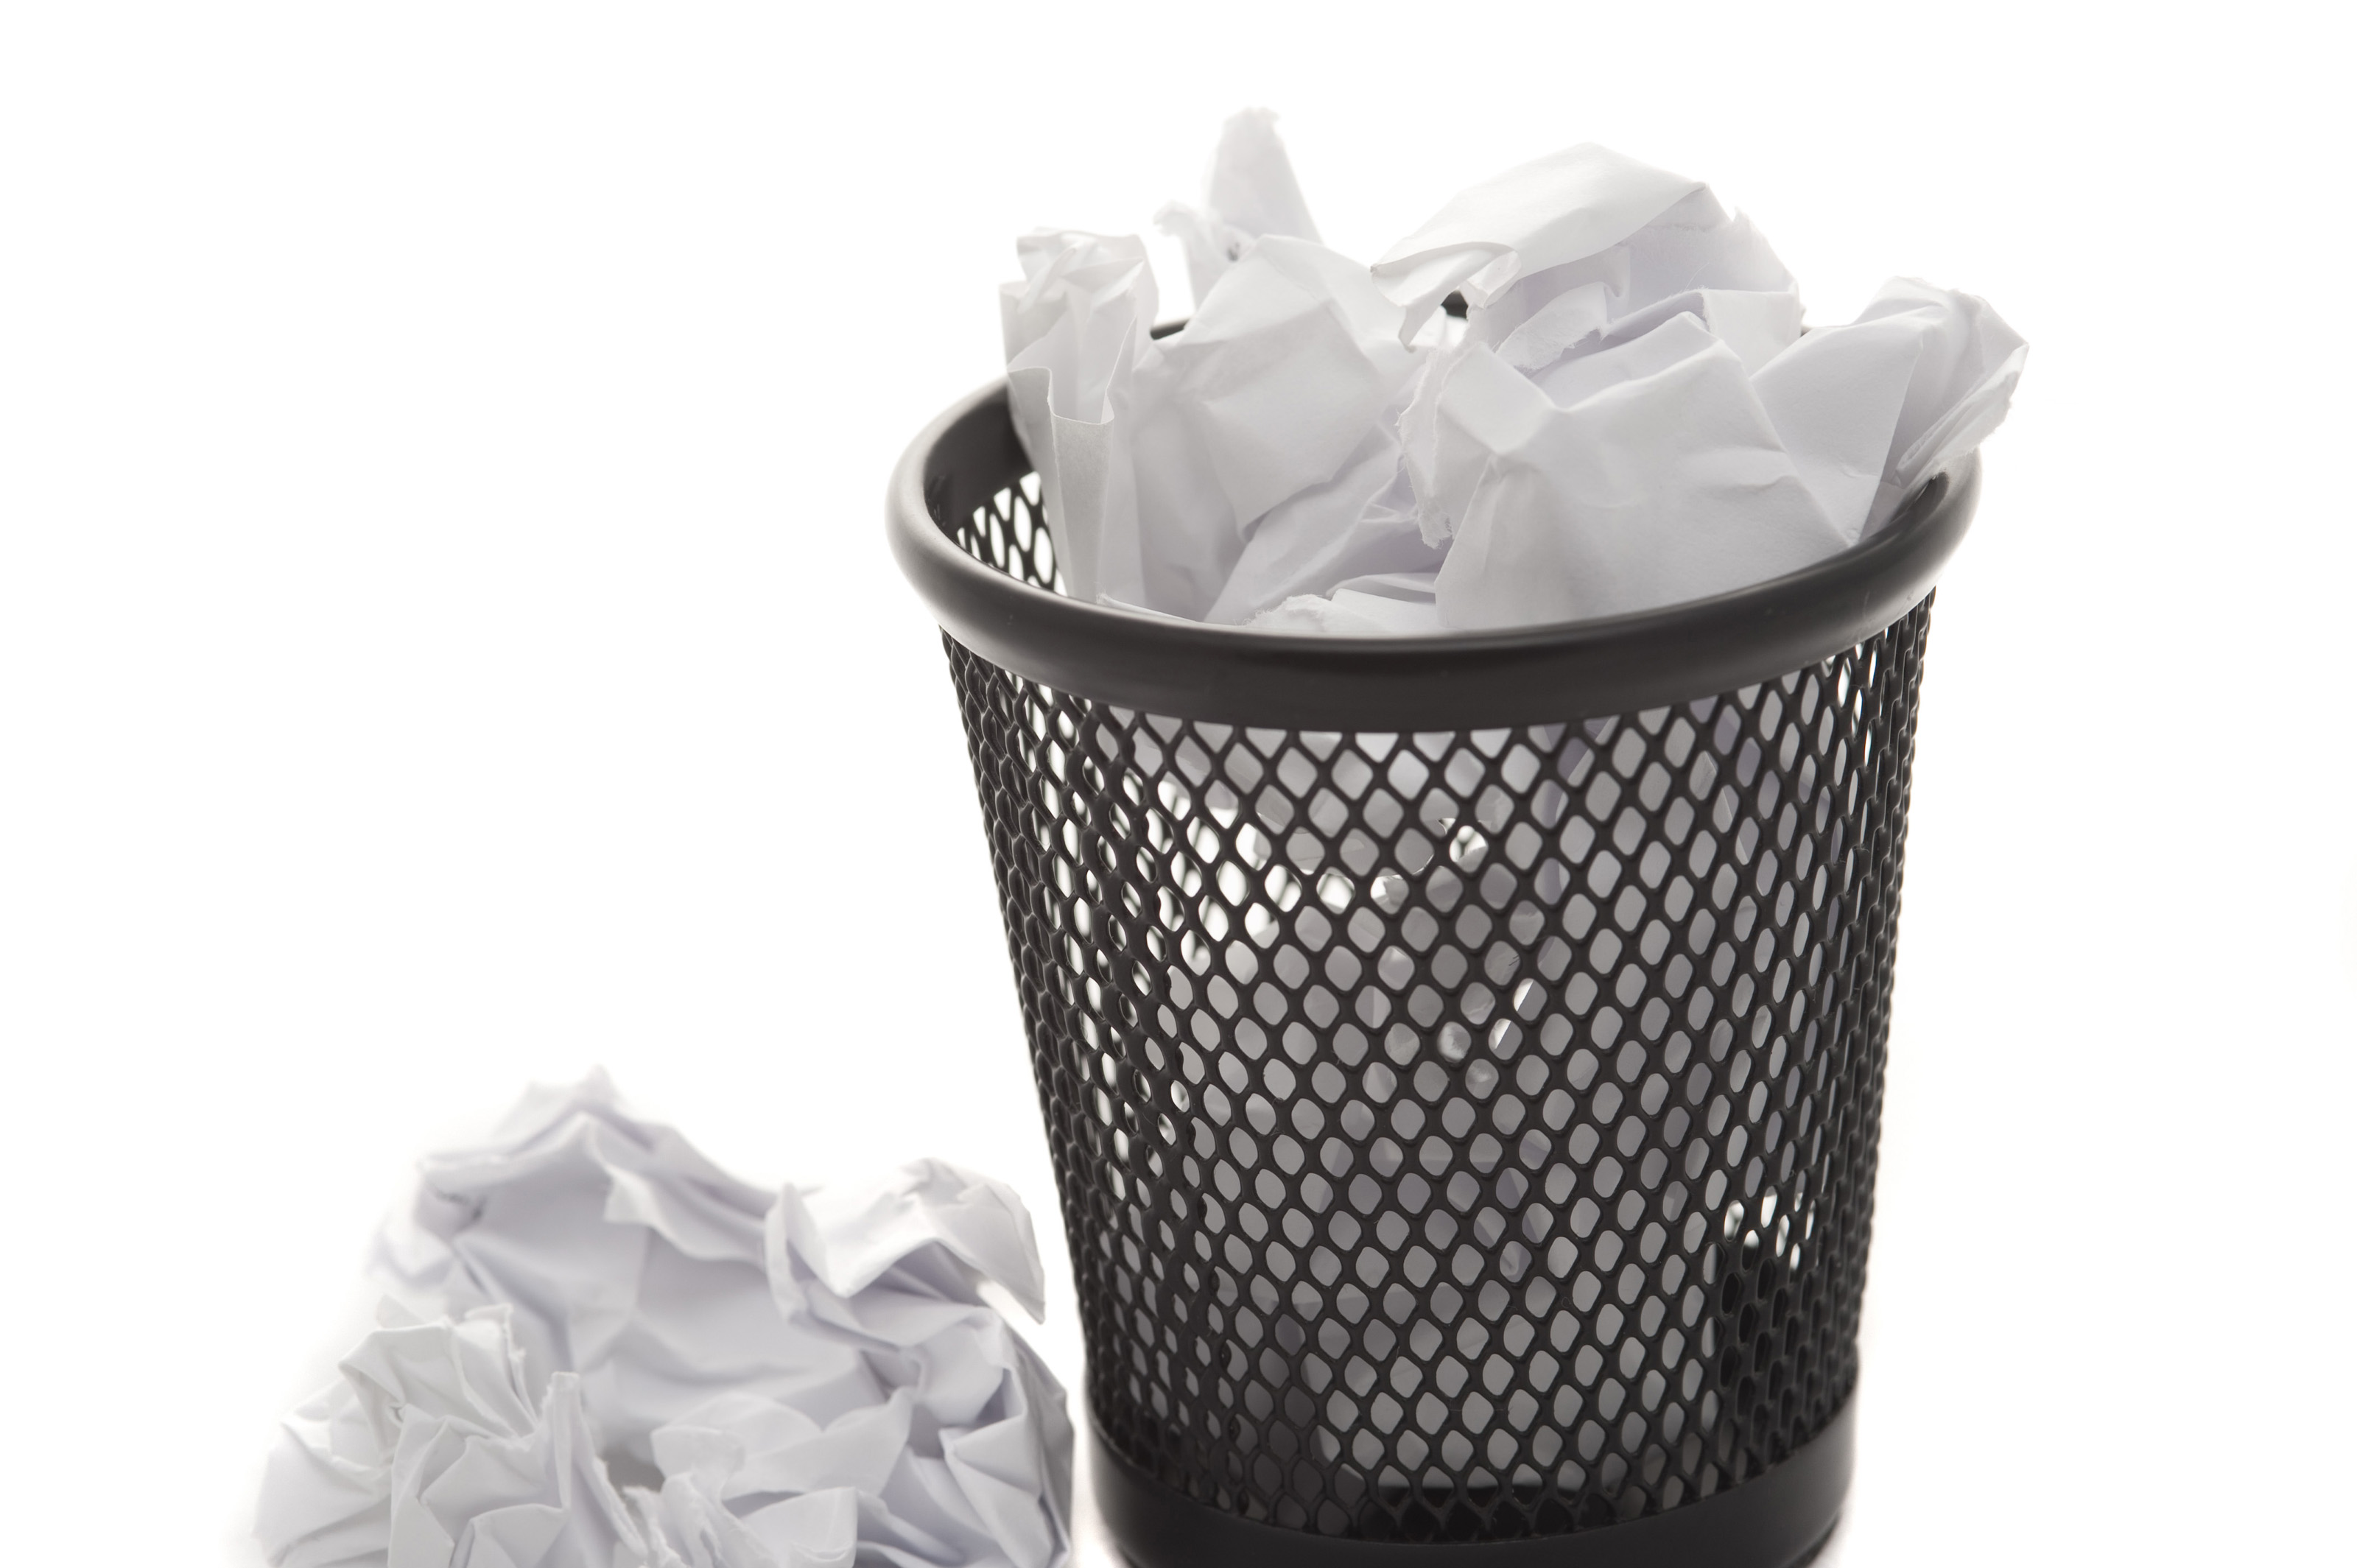 waste paper baskets   george home willow waste paper  - waste paper baskets free stock photo  mini wastepaper basketfreeimageslive